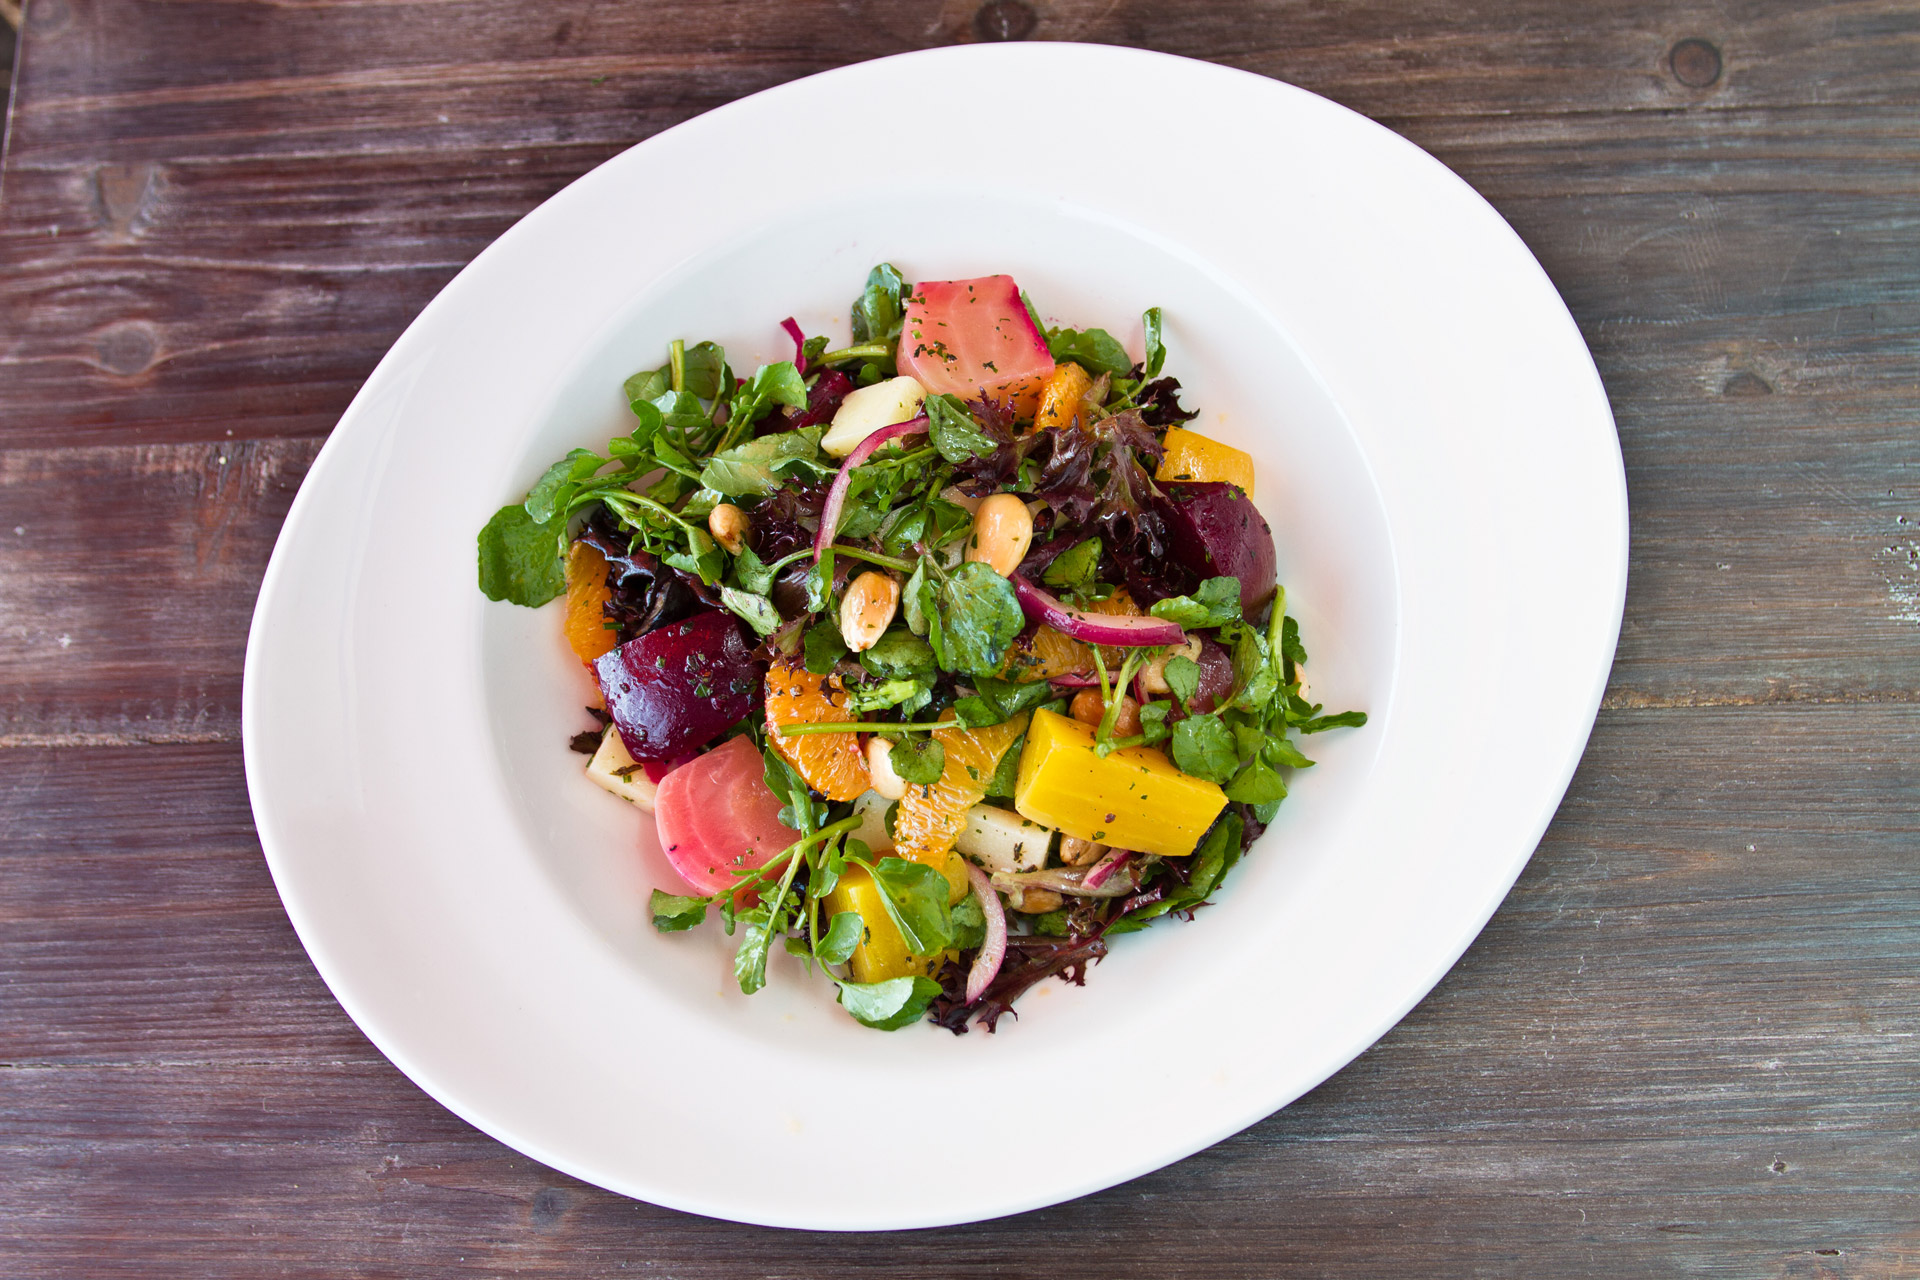 Green leaves with beets, oranges, purple onions, and almonds